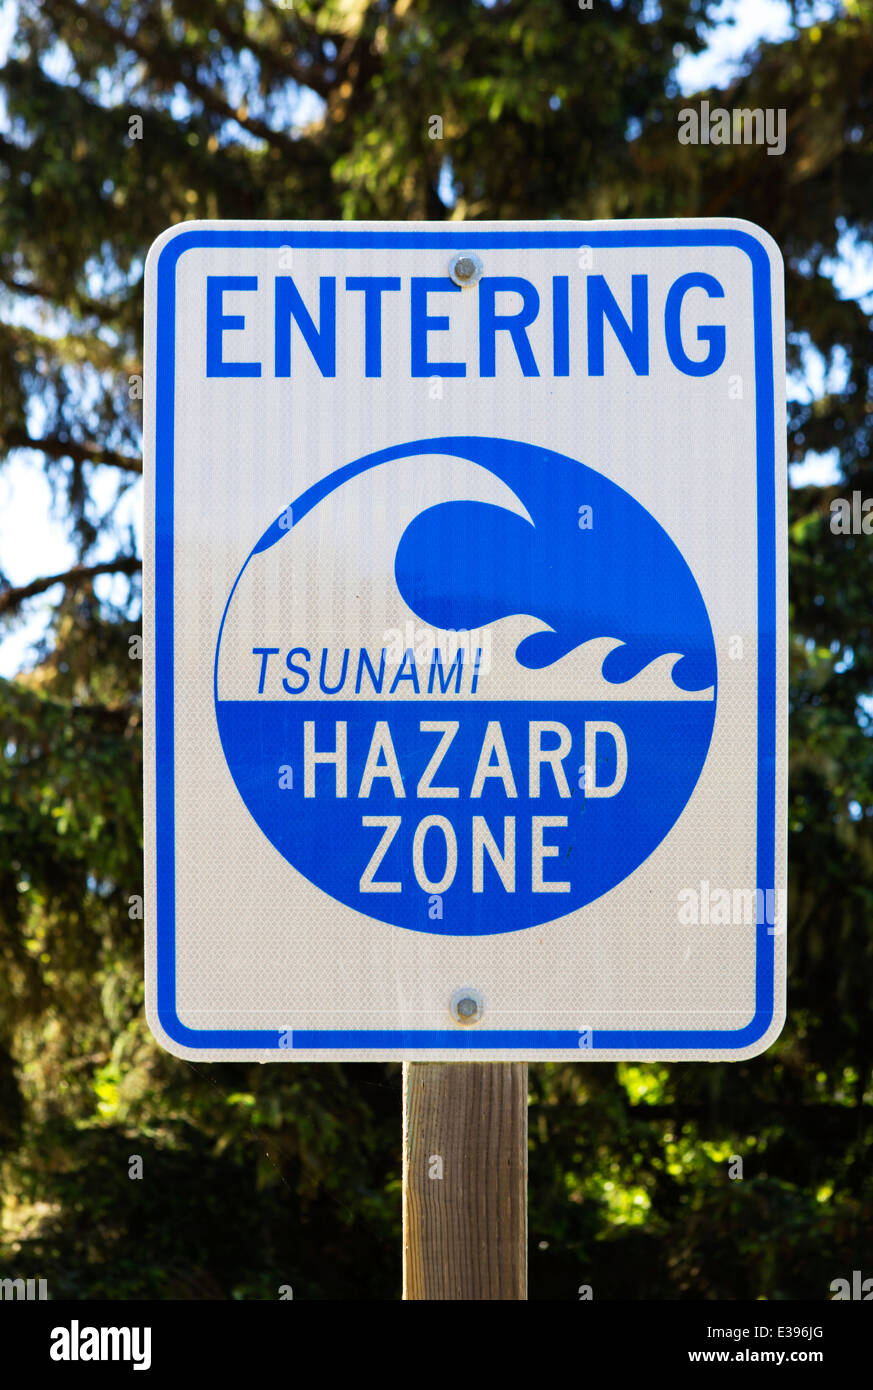 Tsunami Hazard Zone road sign on State Route 1 in Northern California, USA - Stock Image